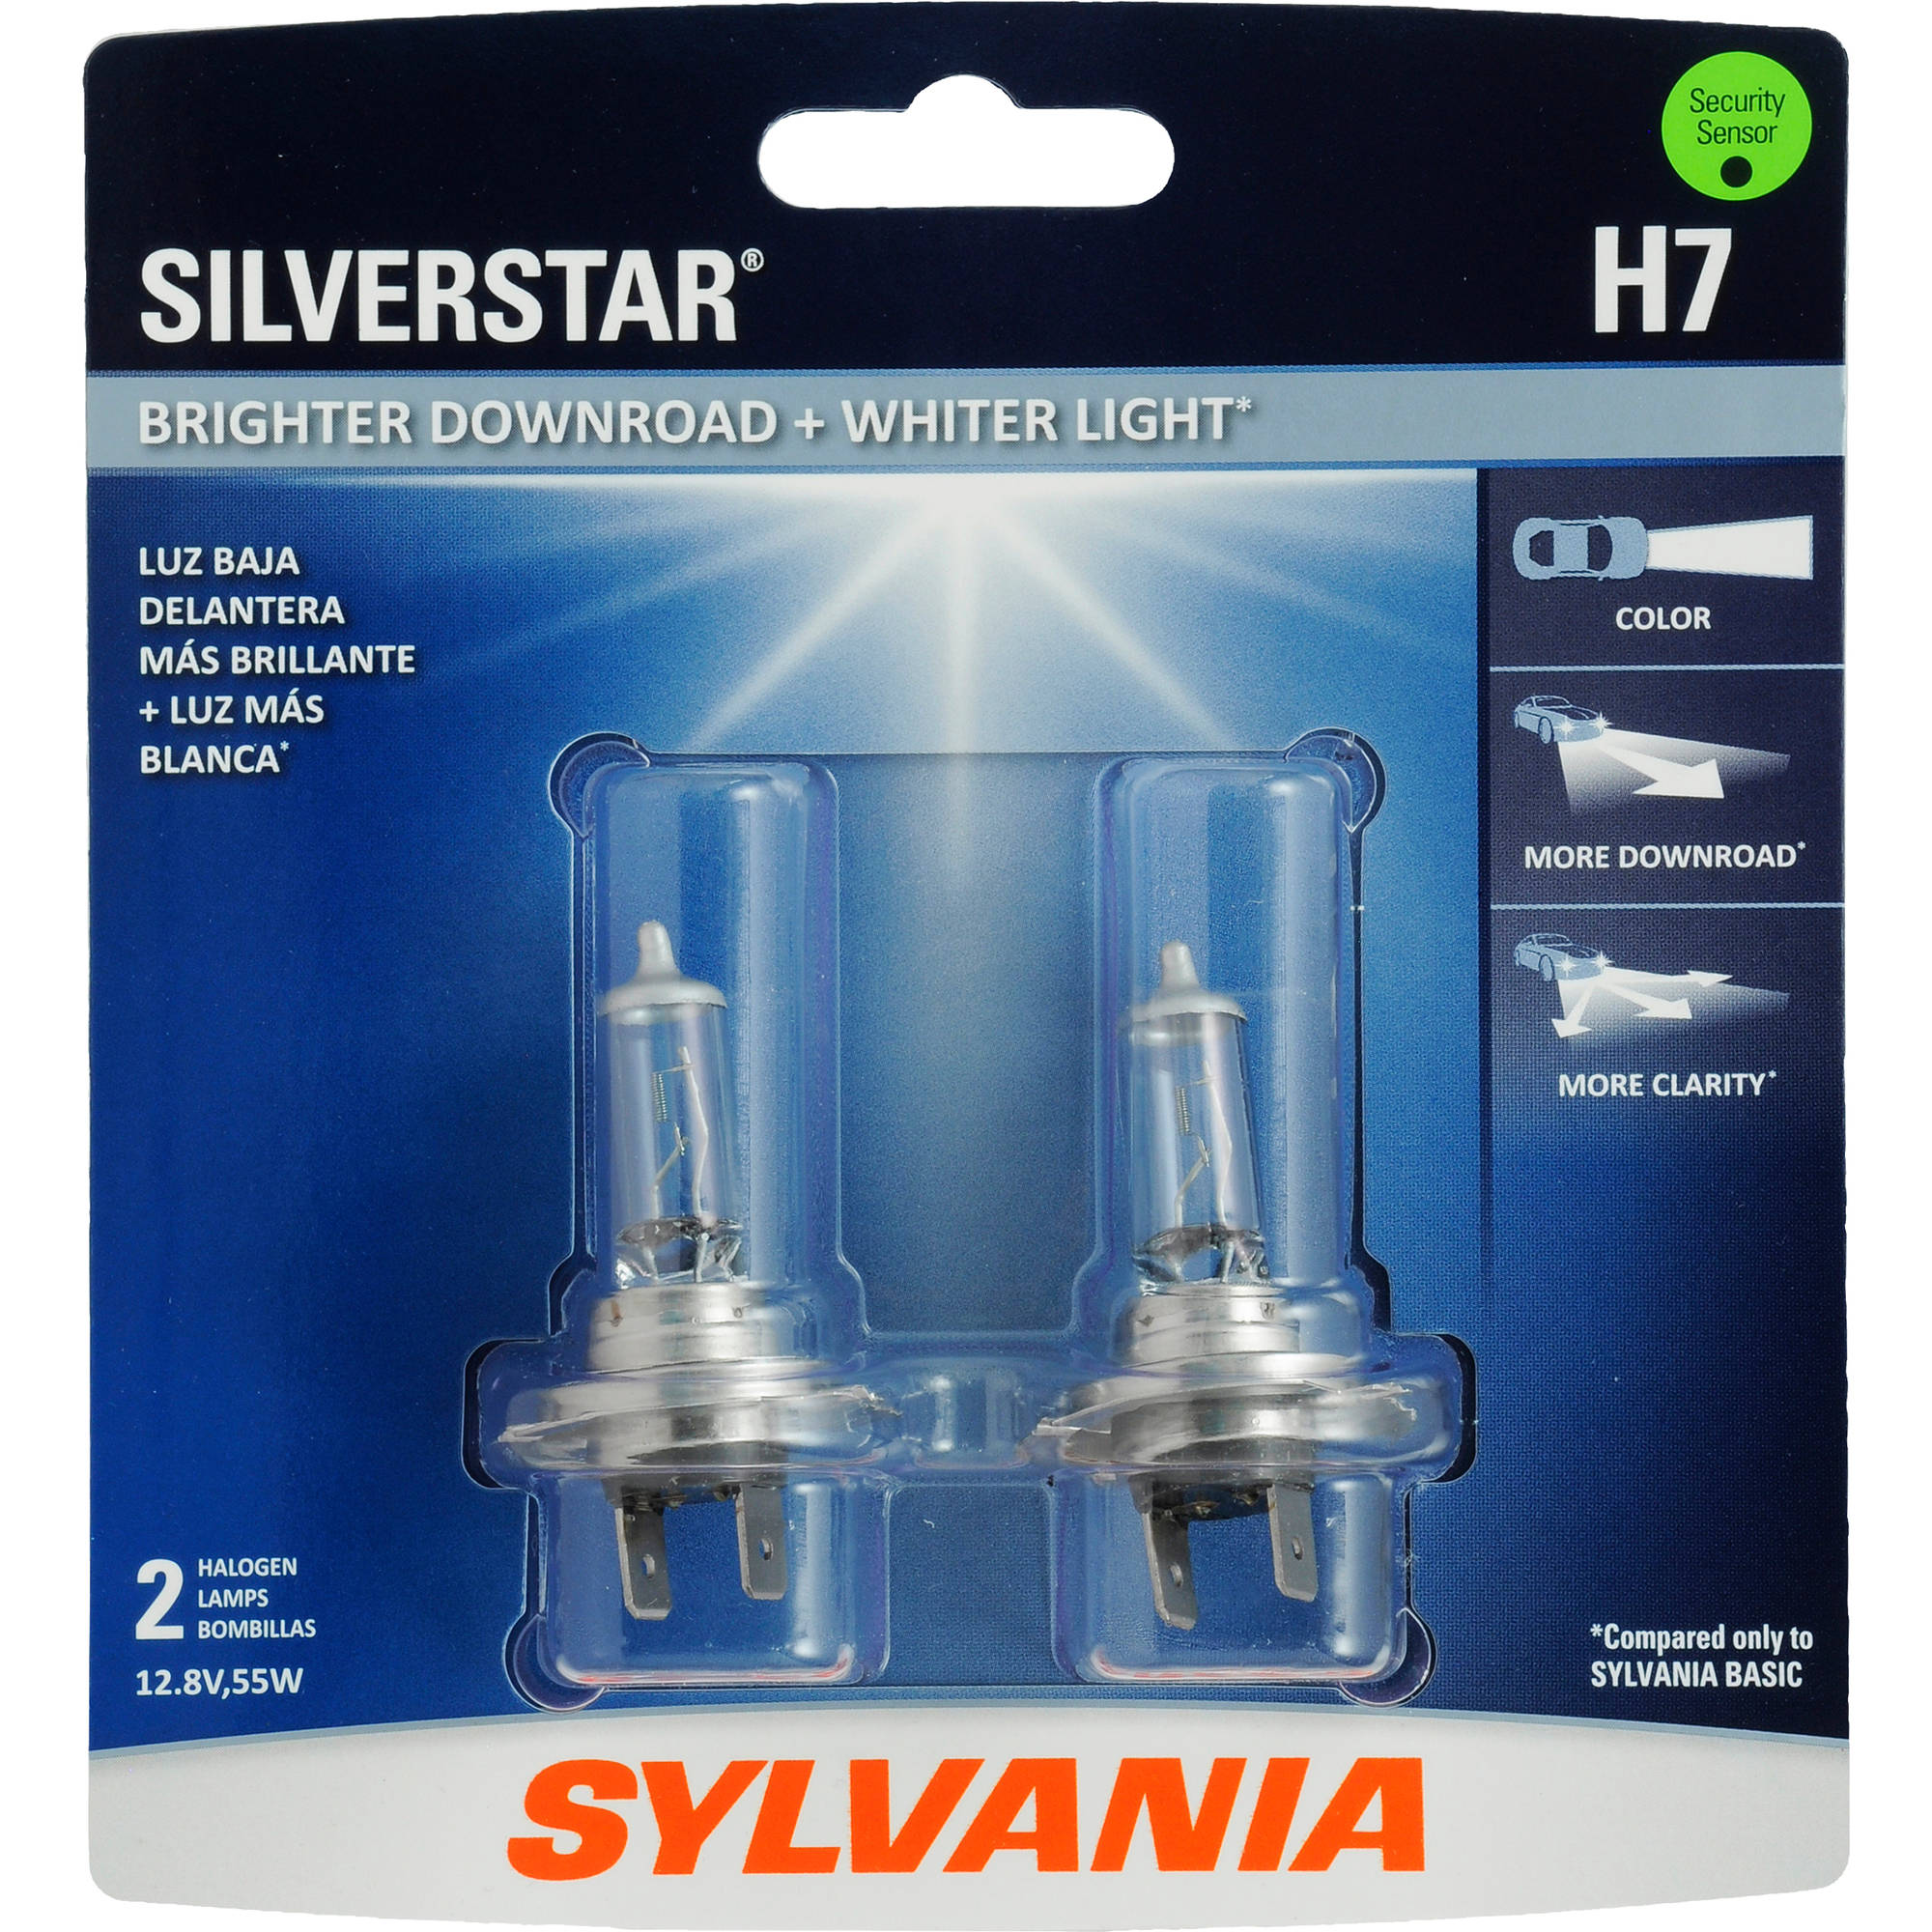 Sylvania H7 SilverStar Headlight, Contains 2 Bulbs